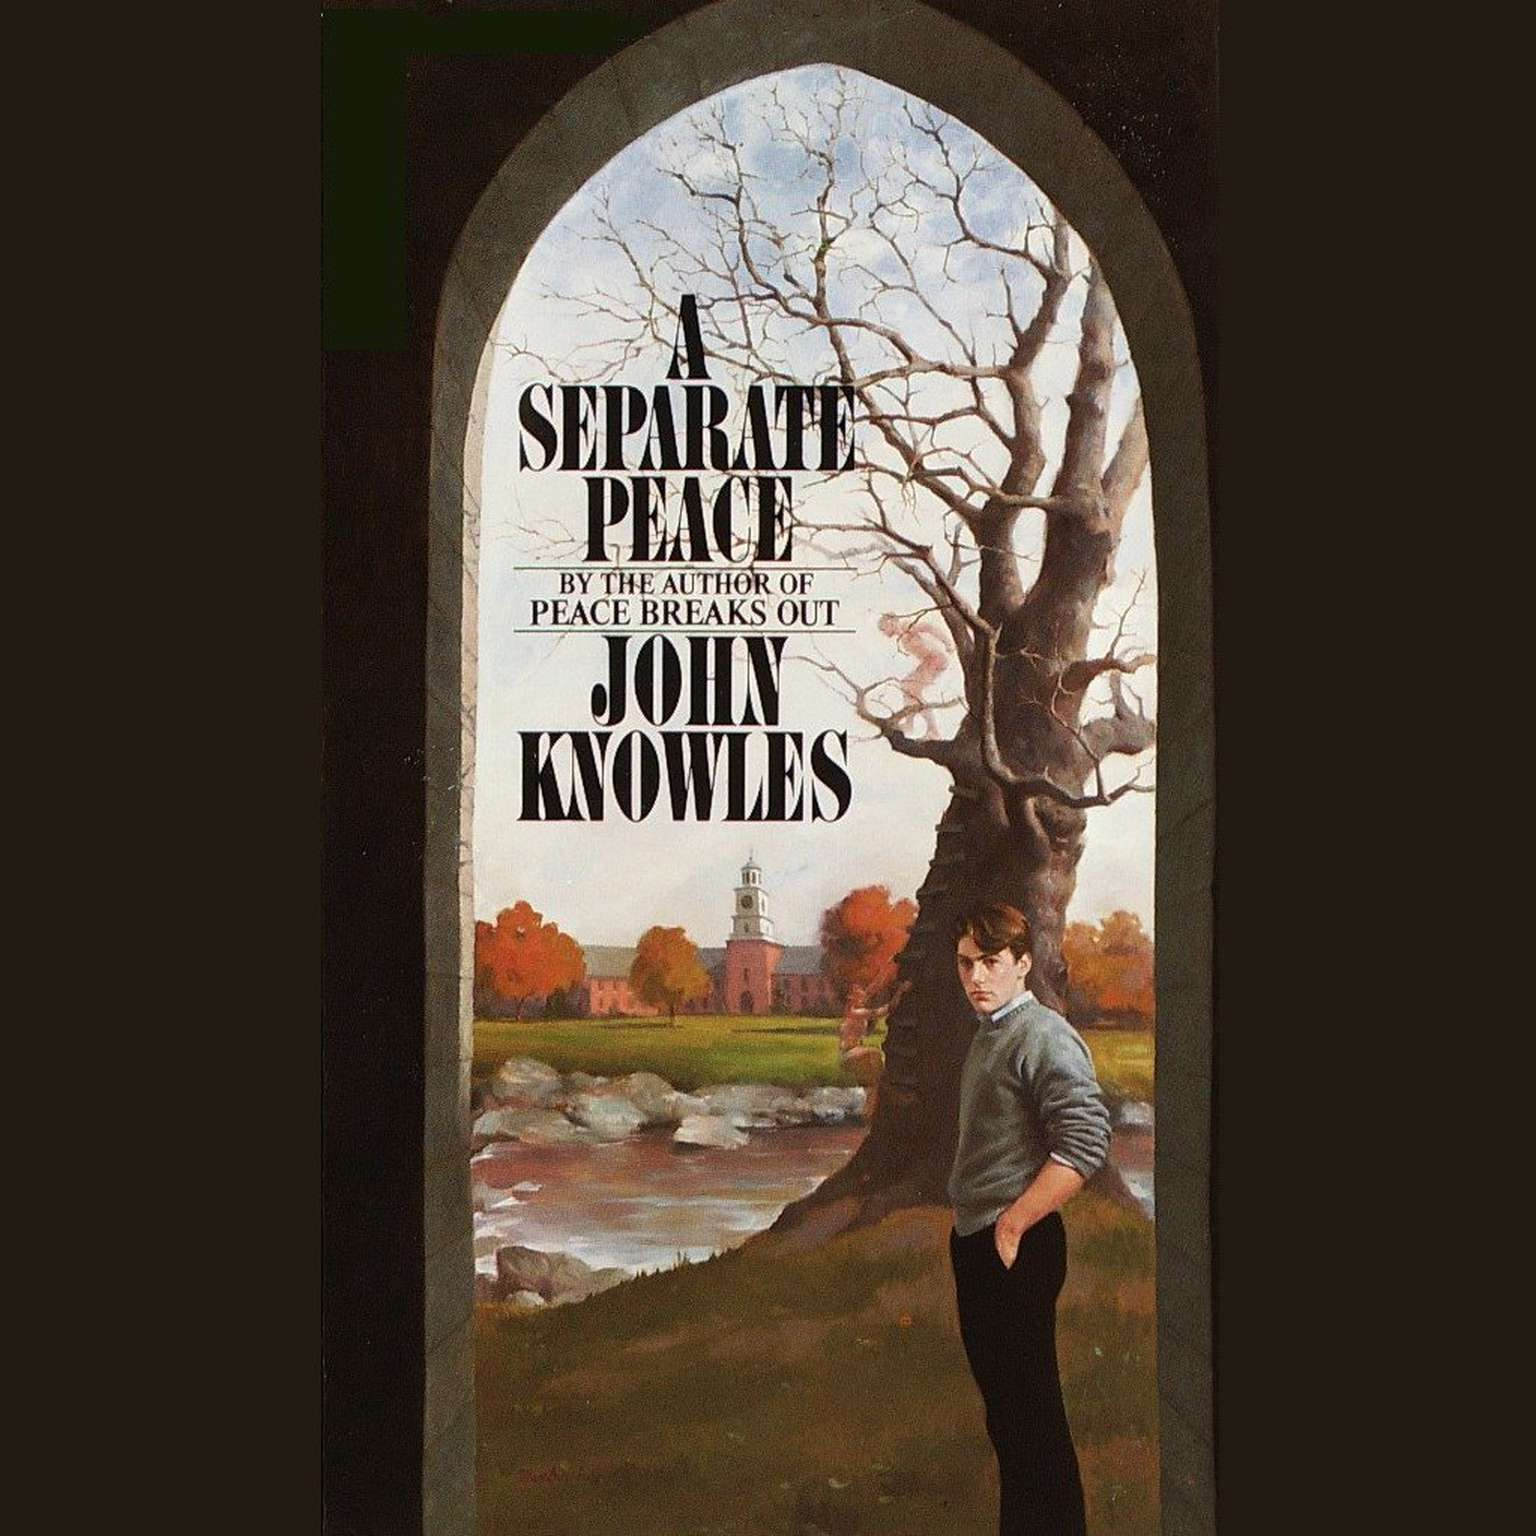 a seperate peace alter ego A summary of chapter 13 in john knowles's a separate peace learn exactly what happened in this chapter, scene, or section of a separate peace and what it means perfect for acing essays, tests, and quizzes, as well as for writing lesson plans.